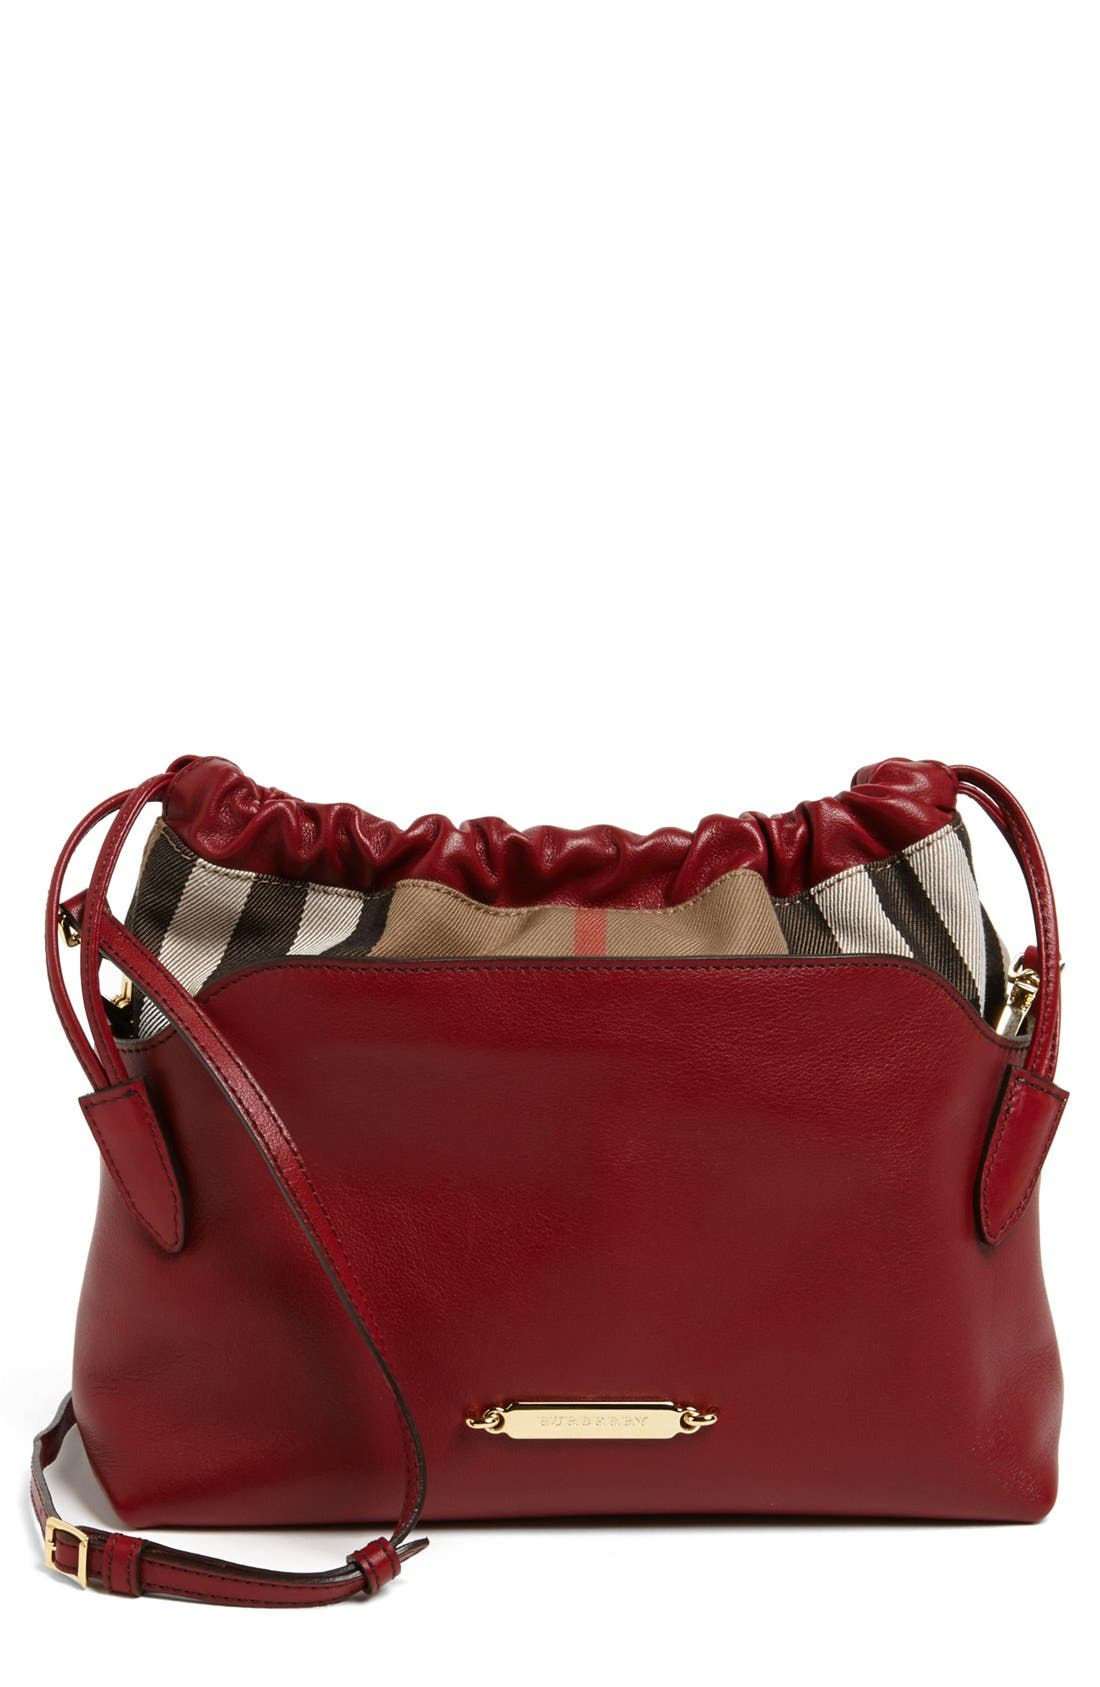 Alternate Image 1 Selected - Burberry 'Little Crush - House Check' Leather Crossbody Bag